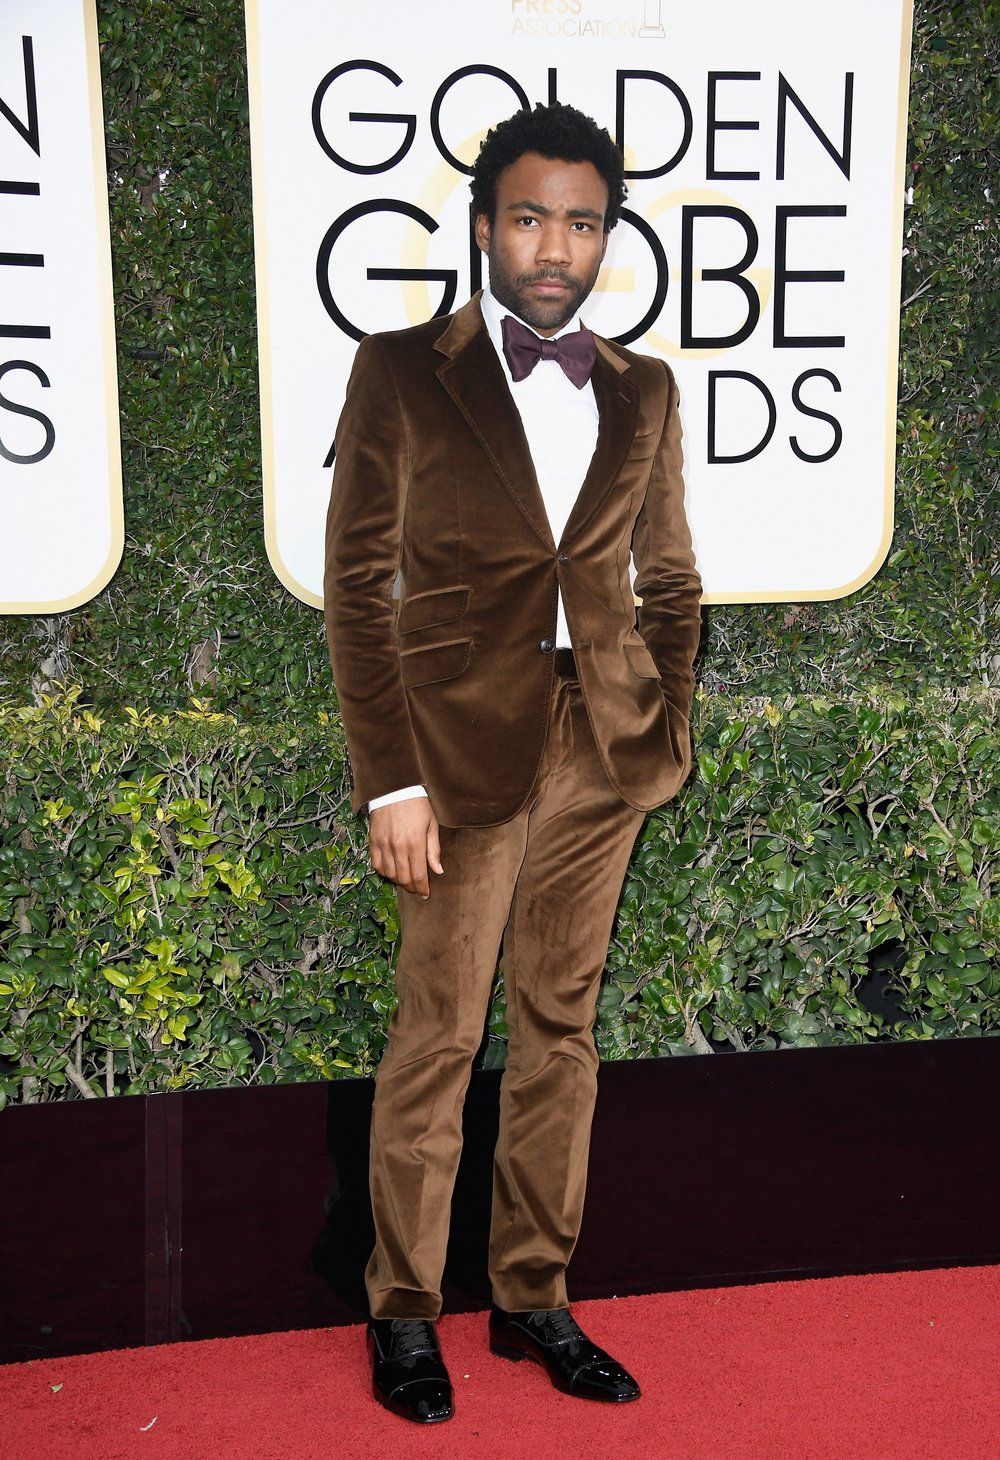 Donald Glover in Gucci.